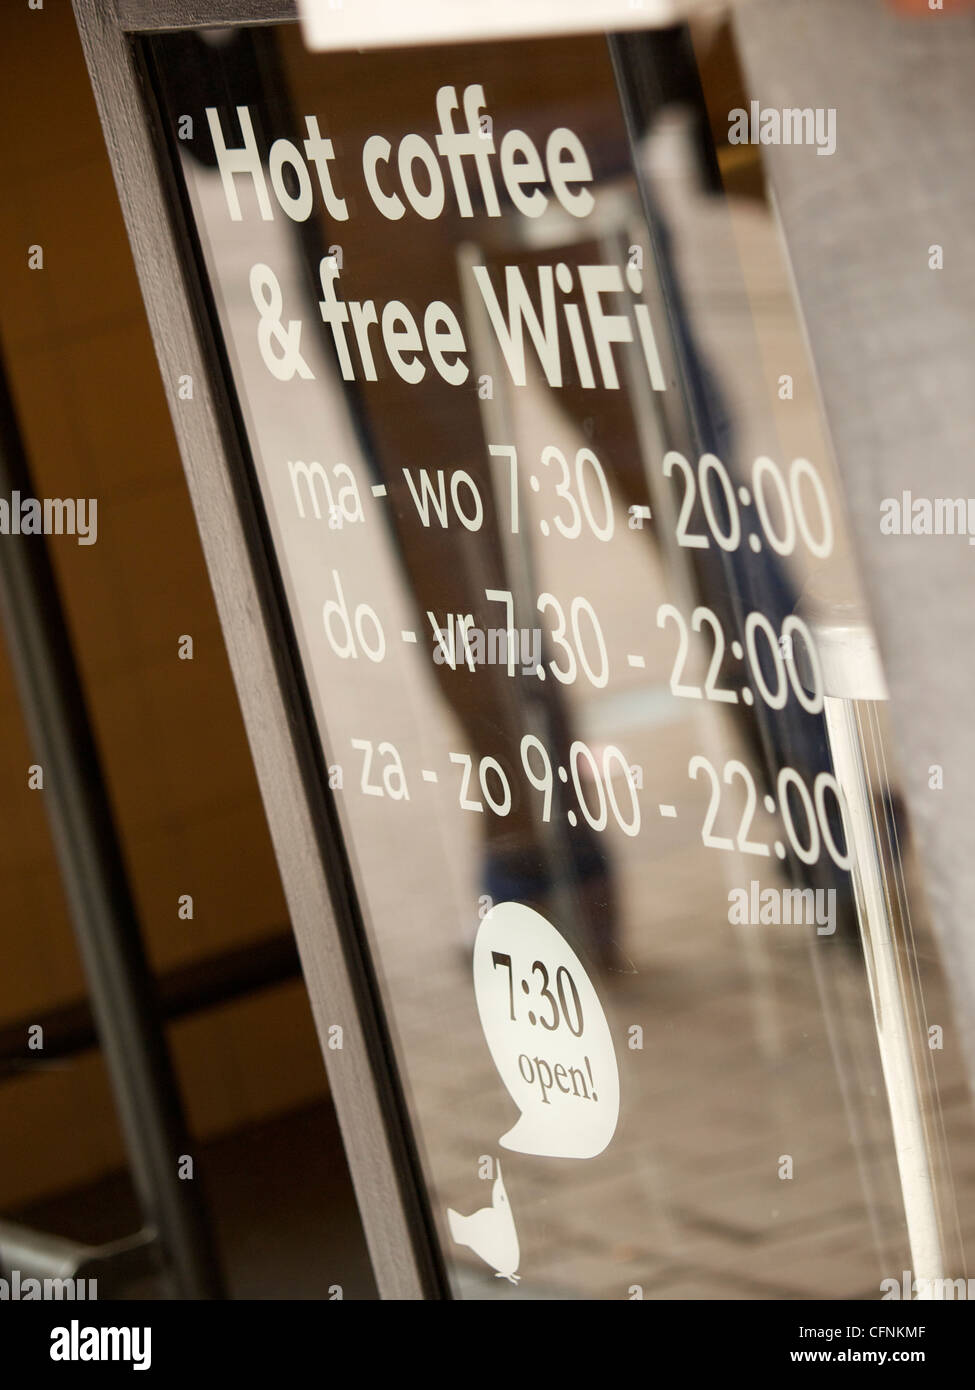 Hot coffee and free wifi sign on cafe door in Amsterdam the Netherlands - Stock Image